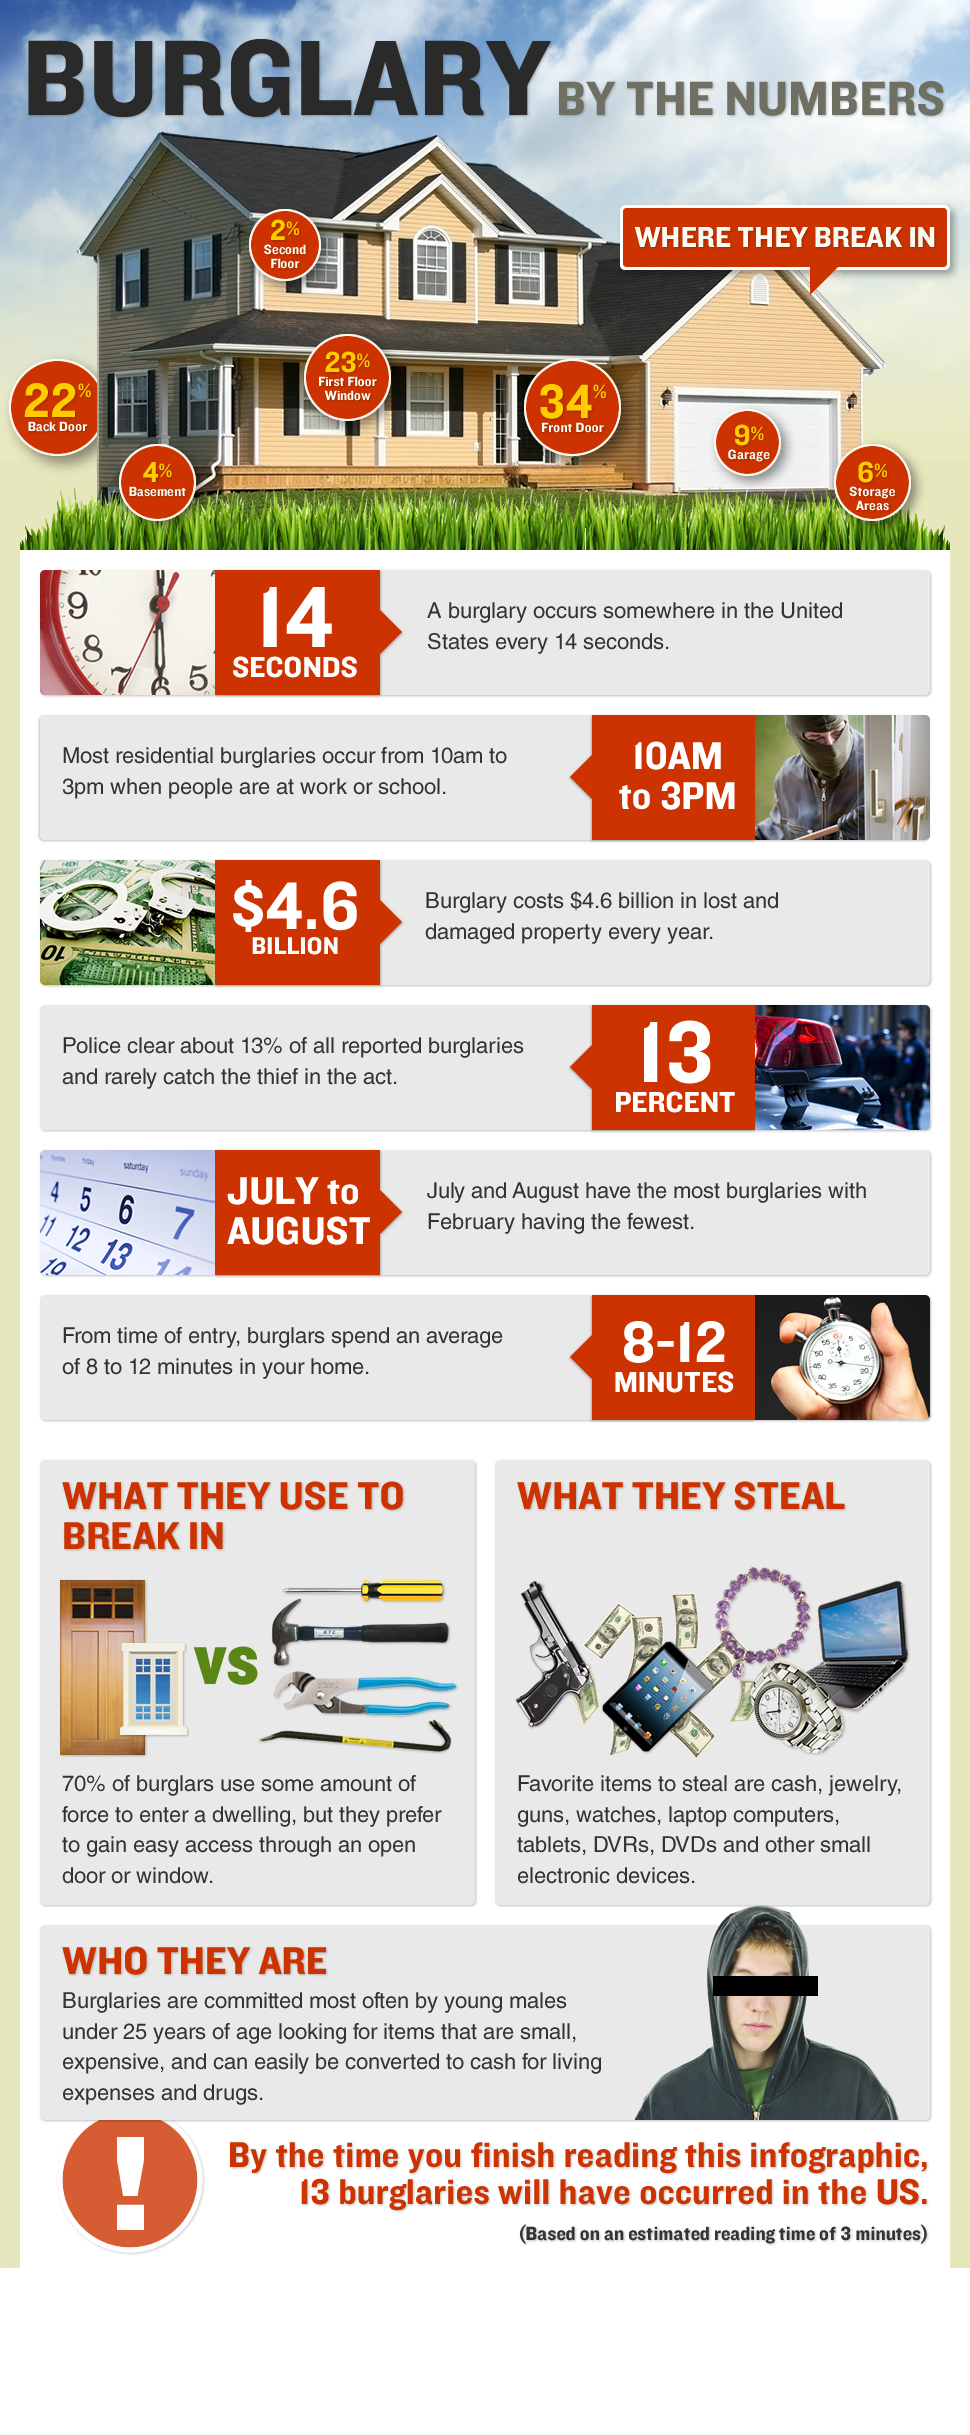 DFW Wholesale Security Burglary by the Numbers